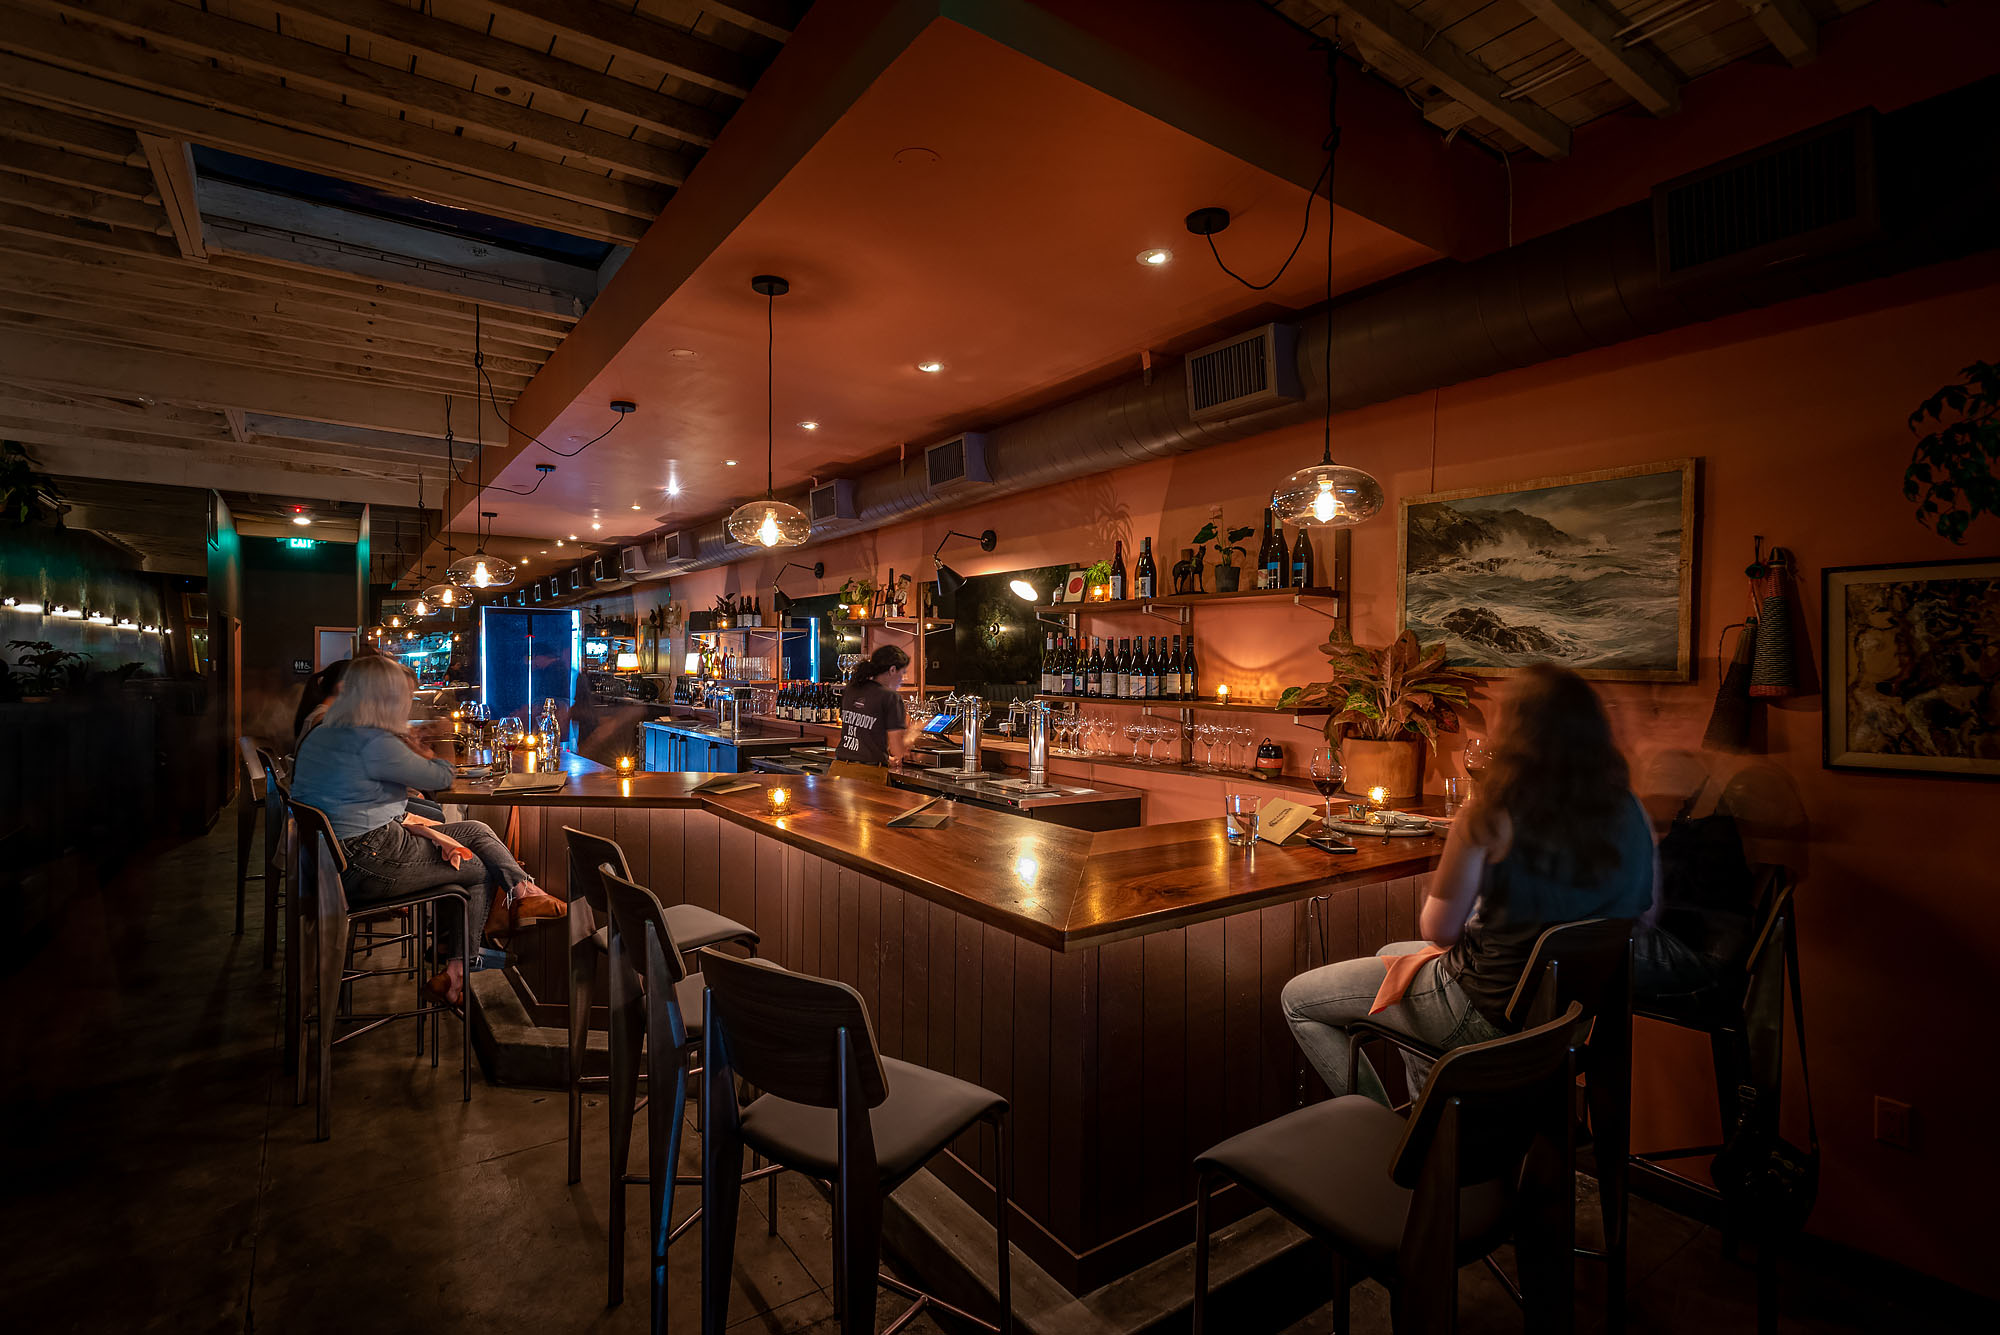 Holcomb wine bar with dim lights in Highland Park, Los Angeles.